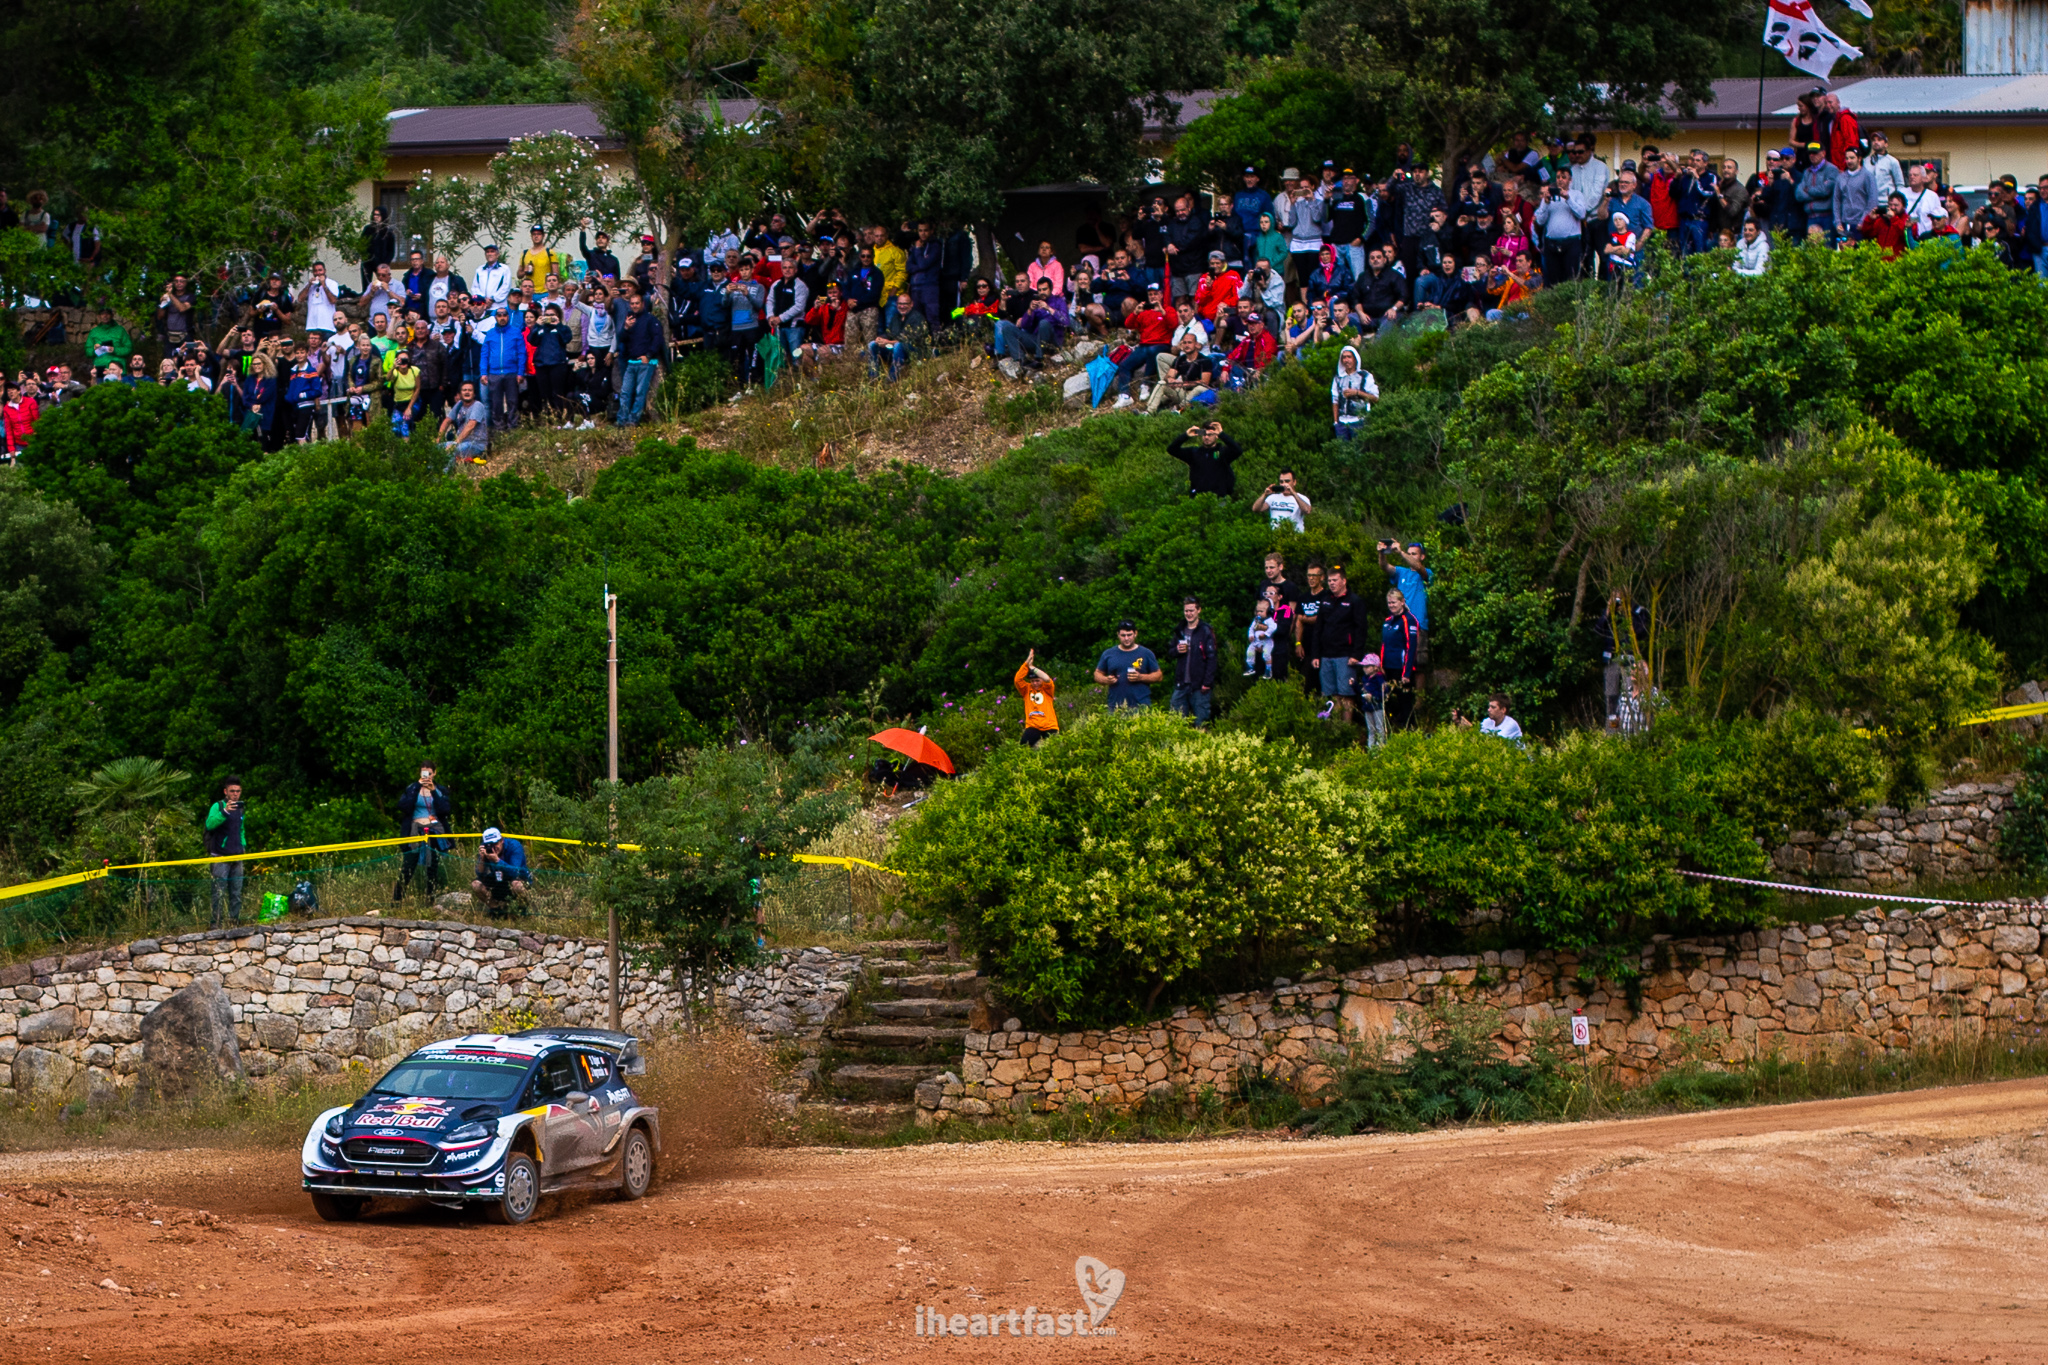 Fans cheer on Sebastien Ogier